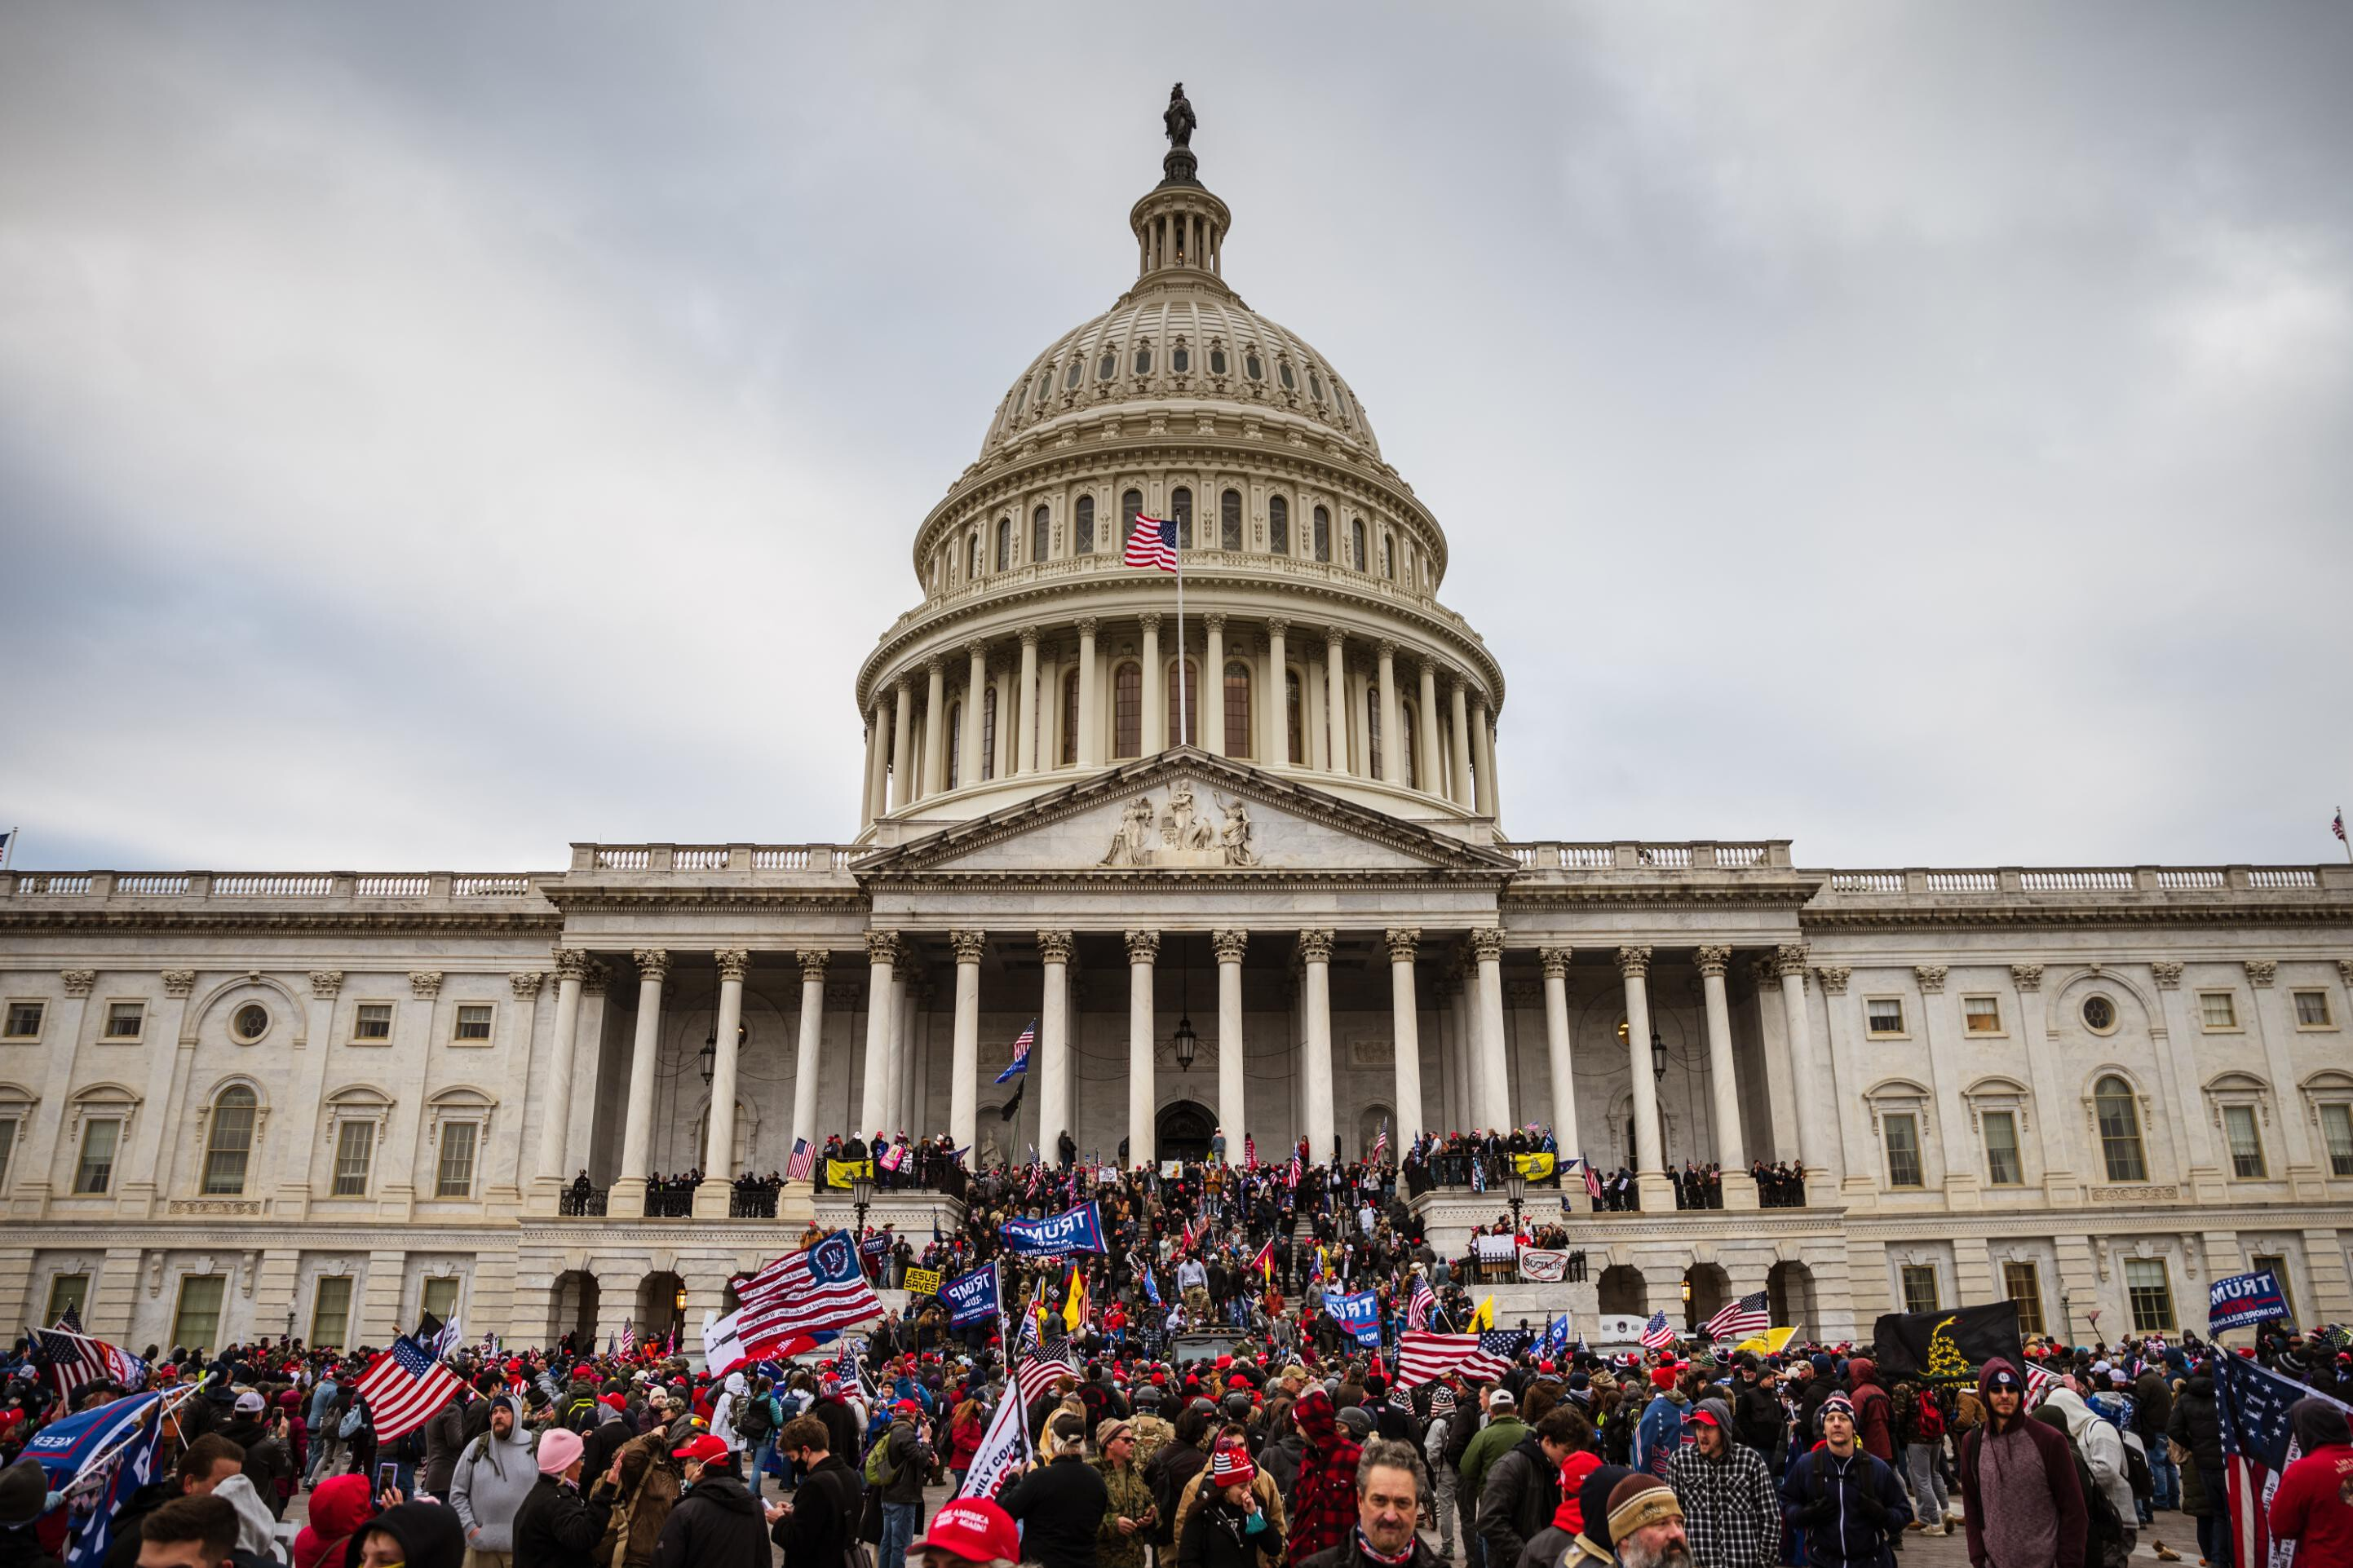 GOP enthusiasm for prosecuting Capitol rioters has fallen, Pew poll finds